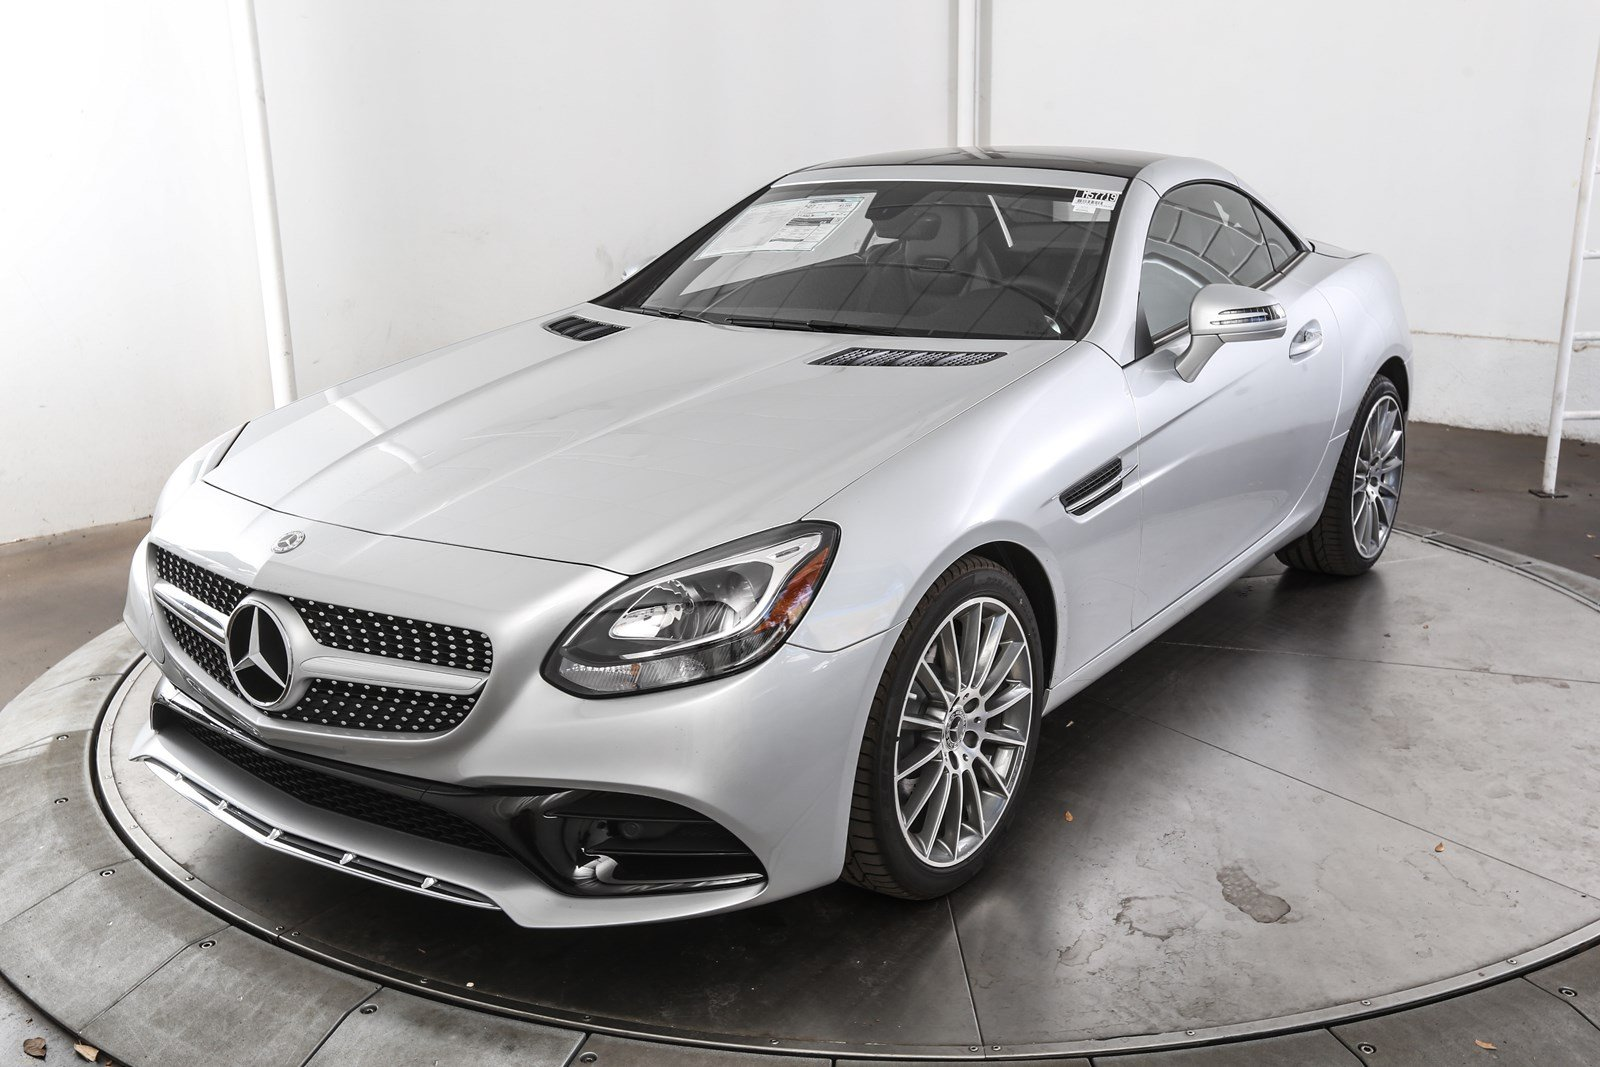 New 2018 mercedes benz slc slc 300 2d convertible in for Slc mercedes benz